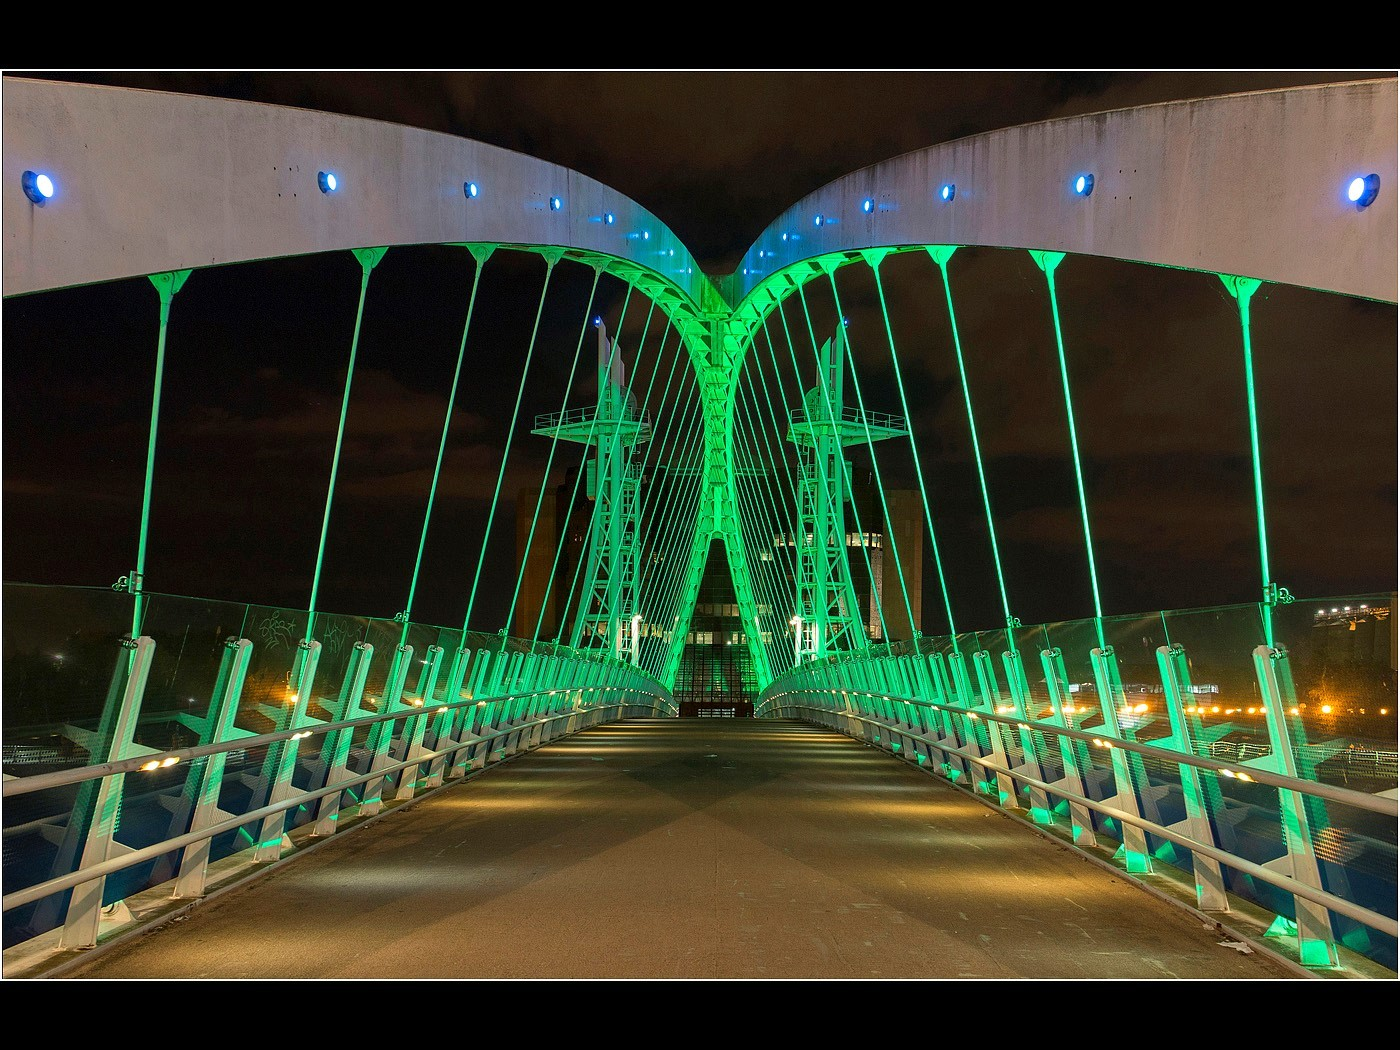 Illuminated Millenium Bridge, Salford Quays